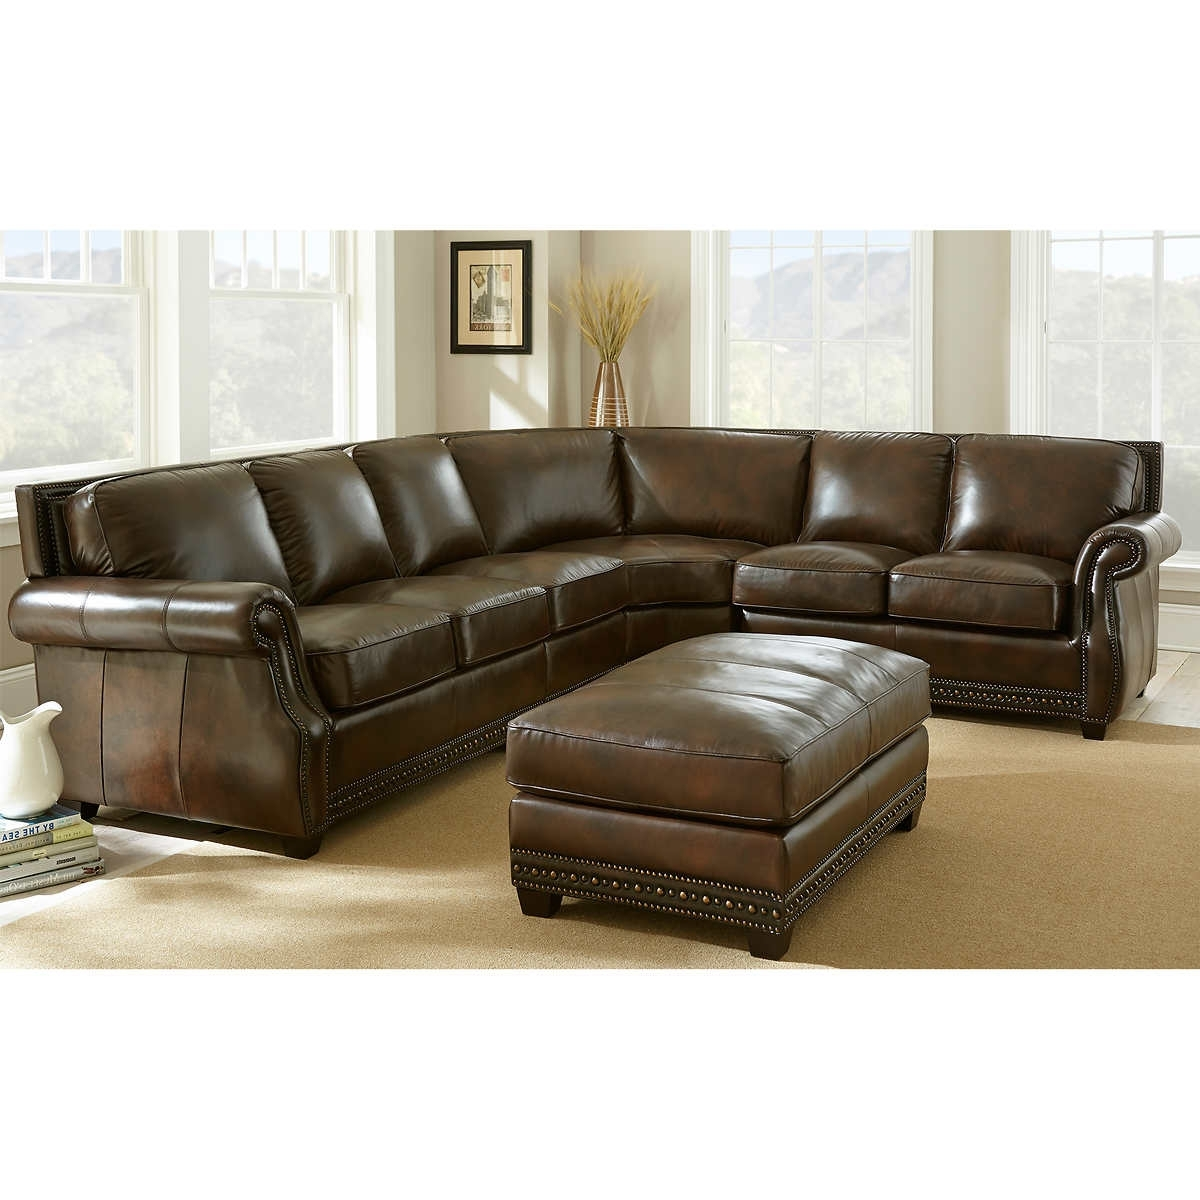 Preferred Sectional Sofas With Recliners Leather Inside Fancy Leather Sectional Sofa With Recliner 30 On Sofas And Couches (View 8 of 20)